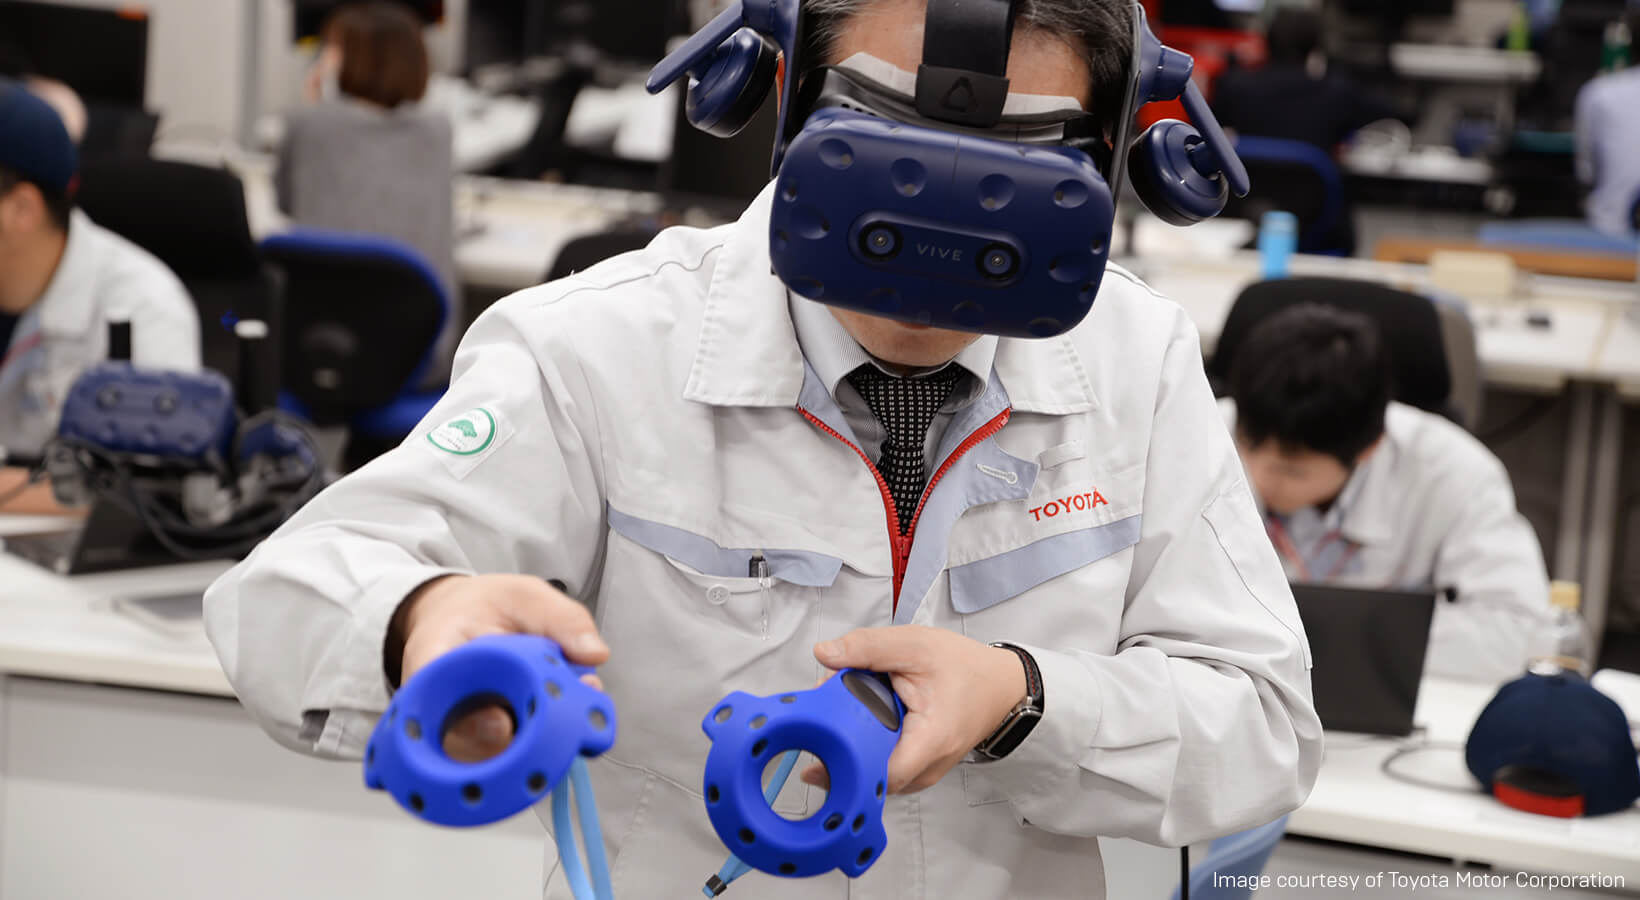 Toyota evaluates vehicle ergonomics utilizing VR and Unreal Engine